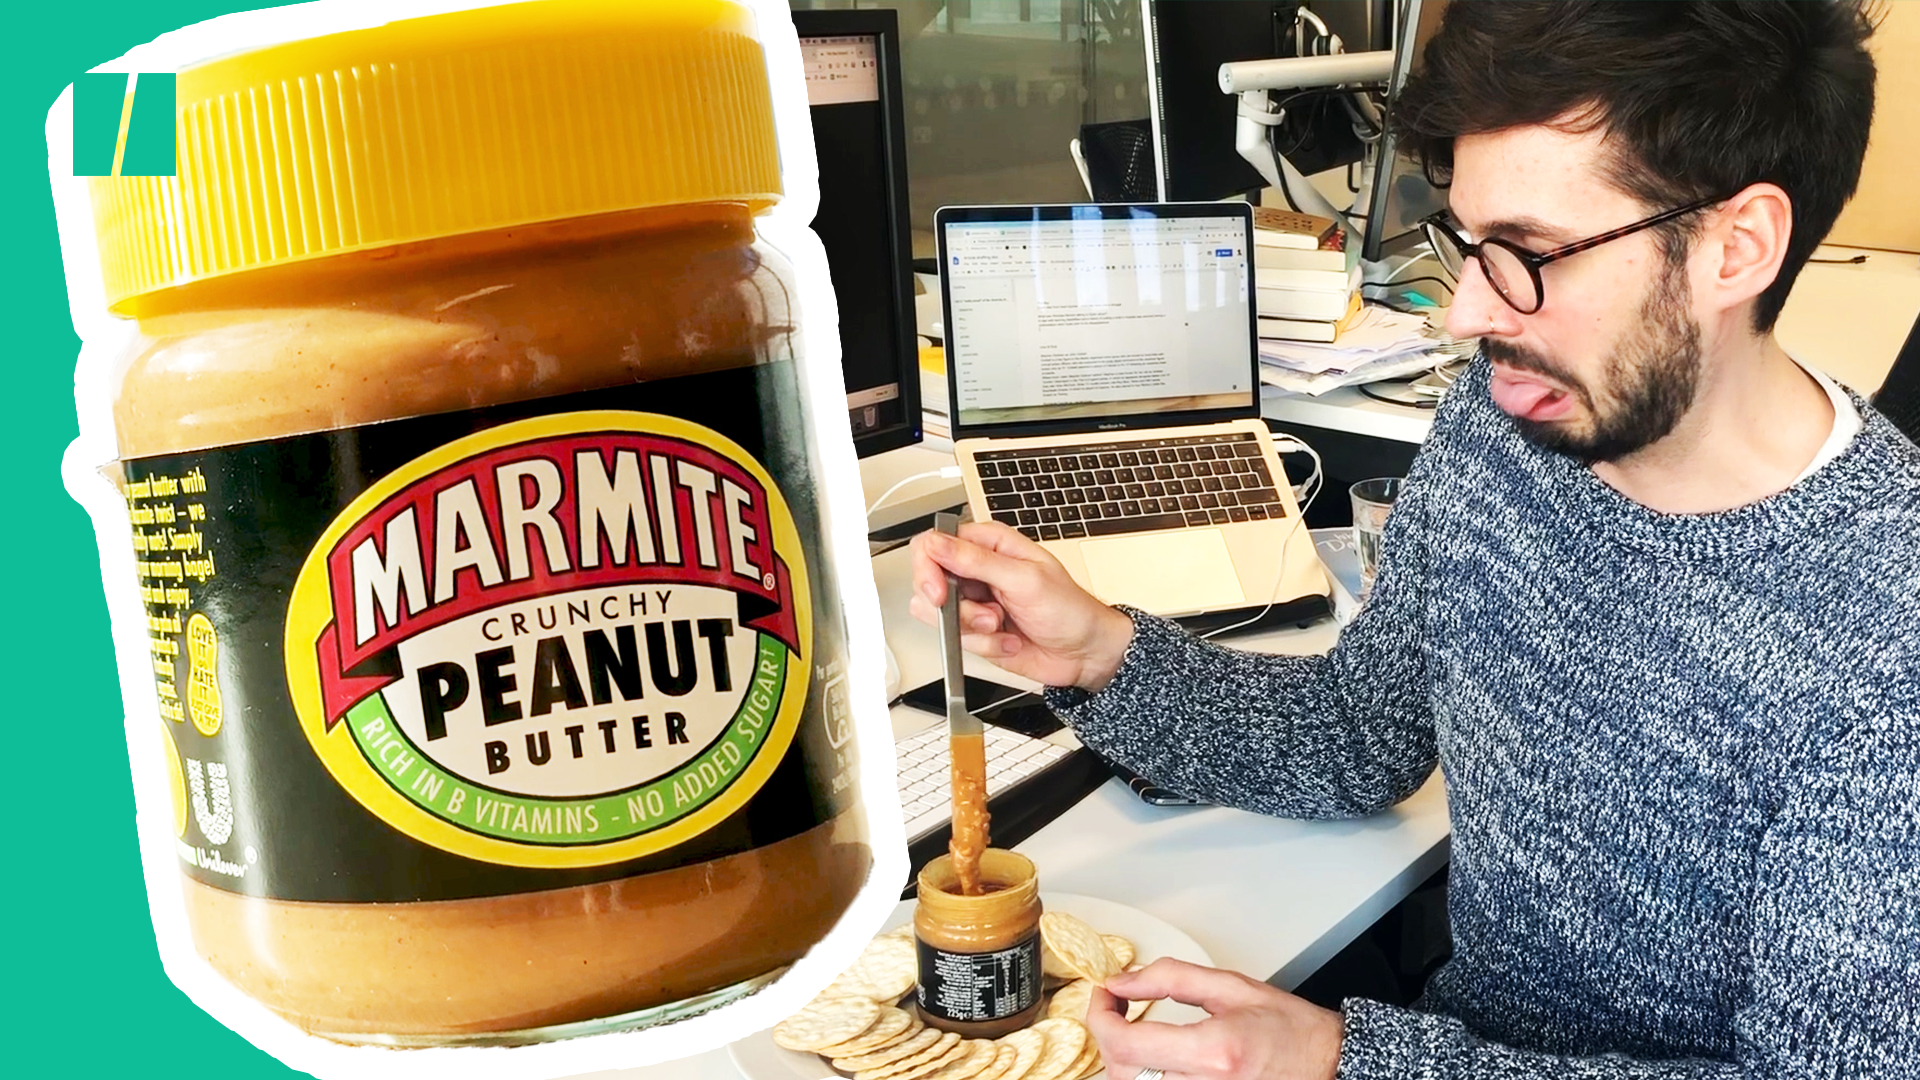 We Tested The New Marmite Peanut Butter